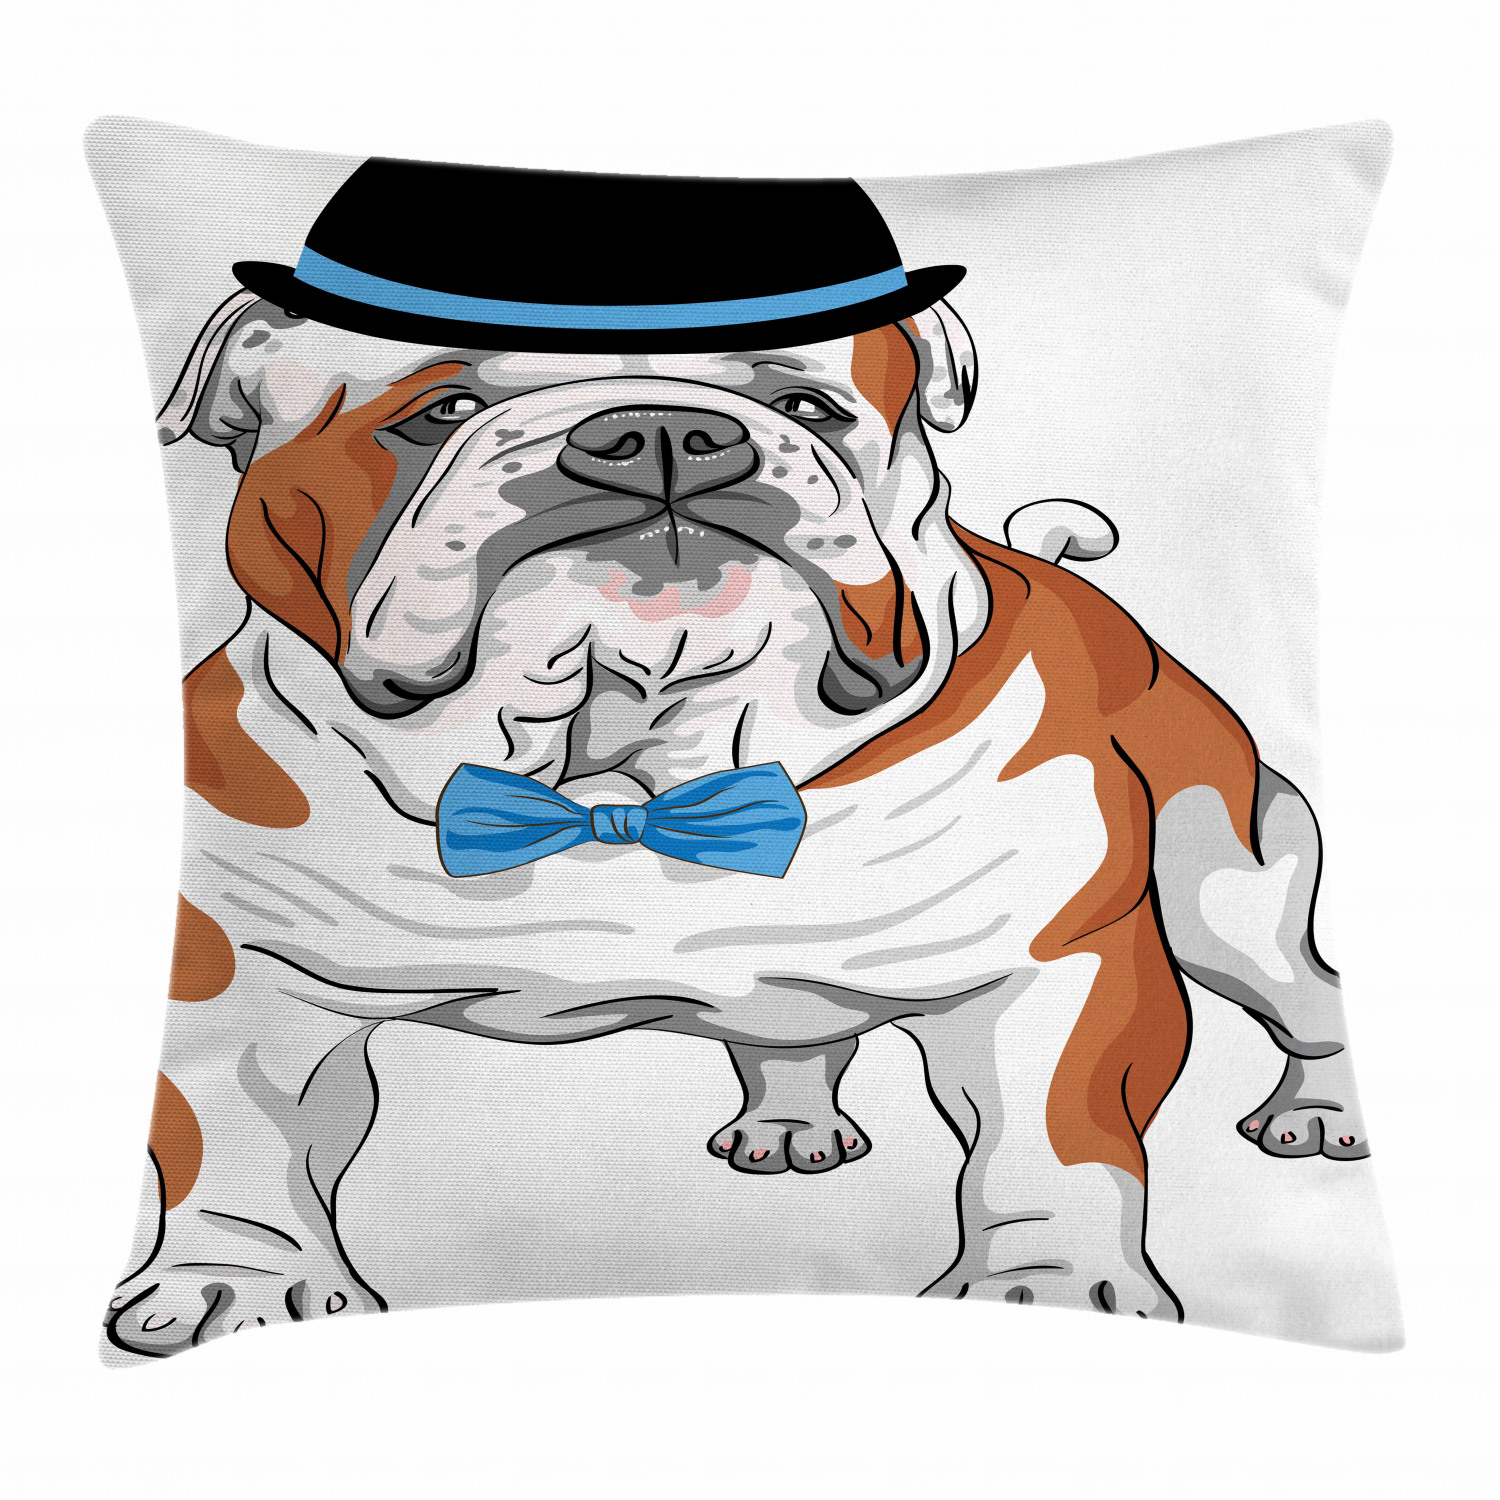 English Bulldog Throw Pillow Cushion Cover Pure Breed Hipster Dog With Vintage Hat And Bow Tie Sketch Animal Decorative Square Accent Pillow Case 16 X 16 Inches Brown Black Blue By Ambesonne